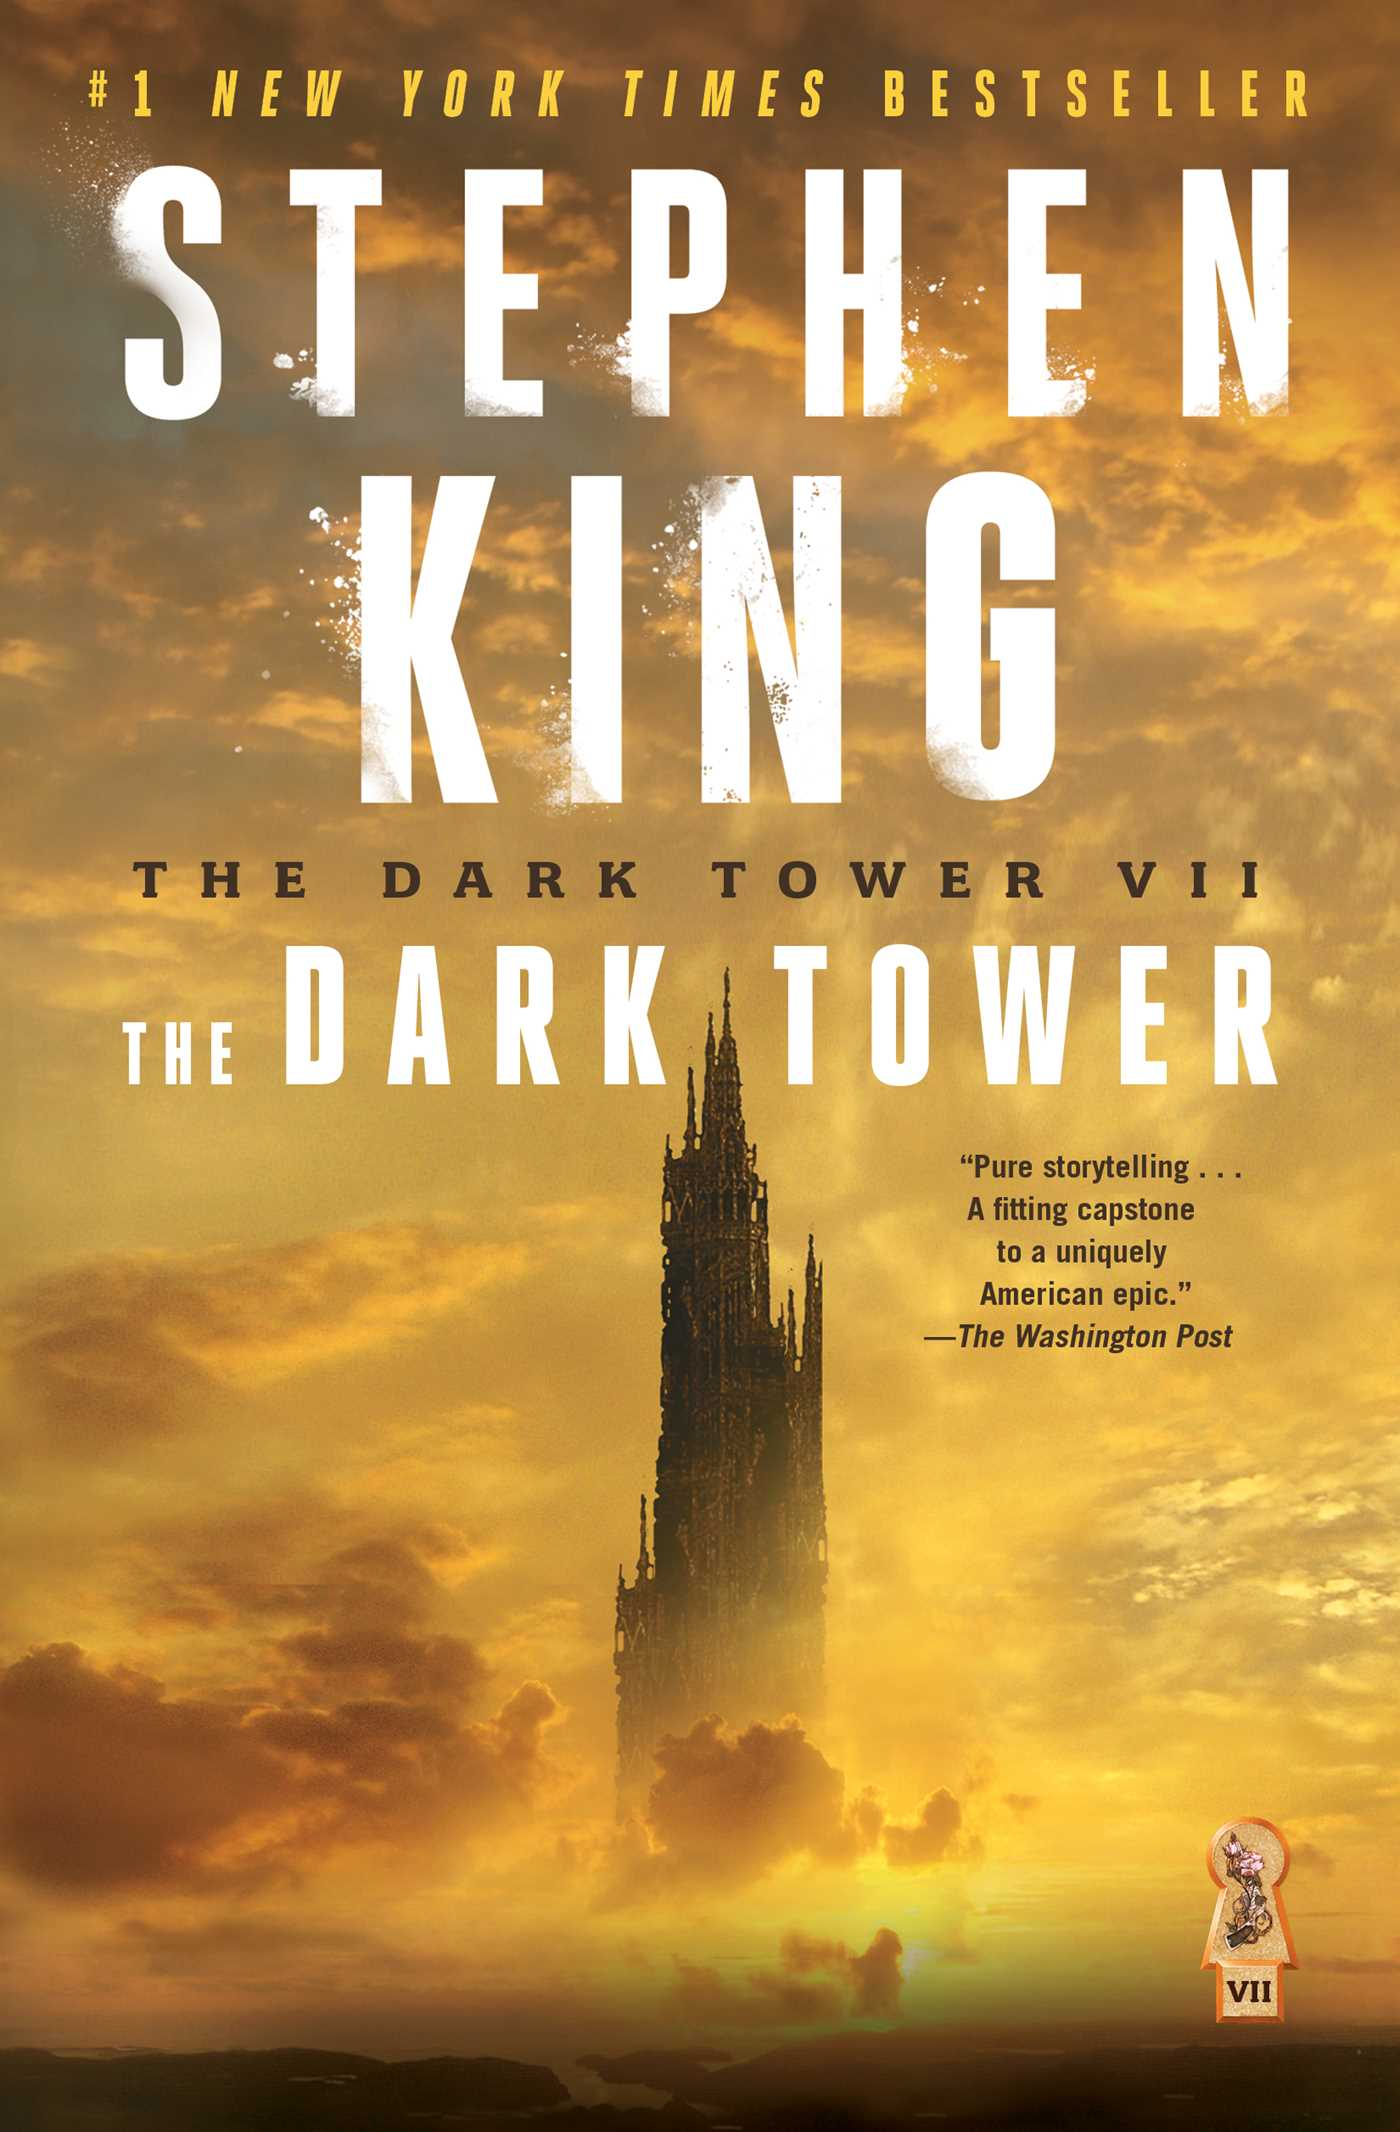 The-dark-tower-vii-9780743254564_hr